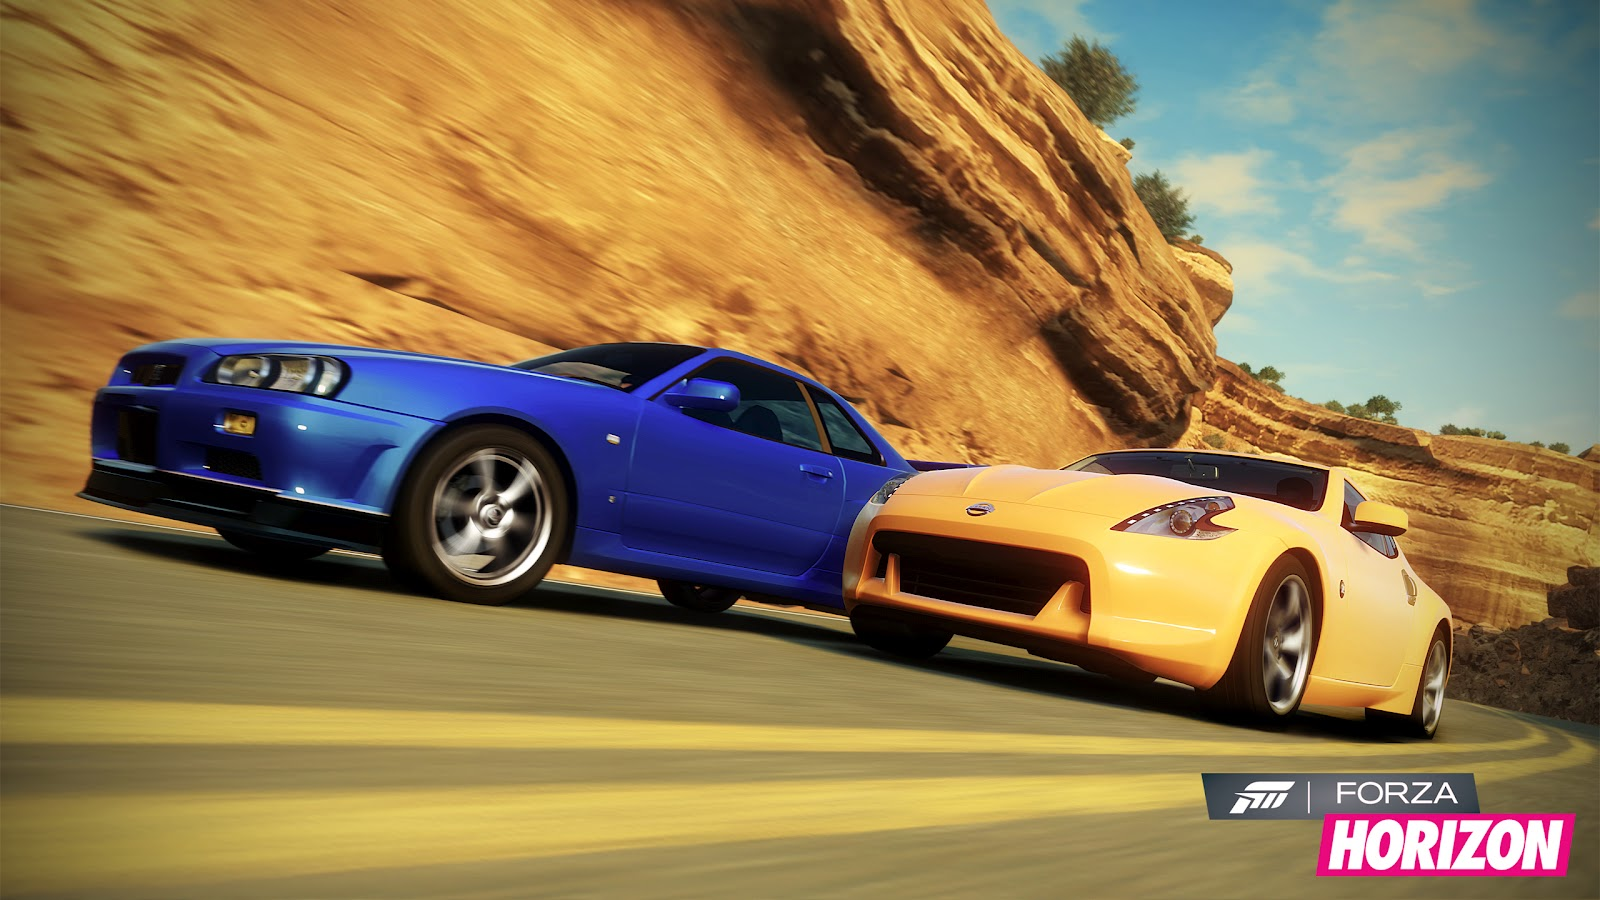 Forza Horizon HD & Widescreen Wallpaper 0.750729598932145